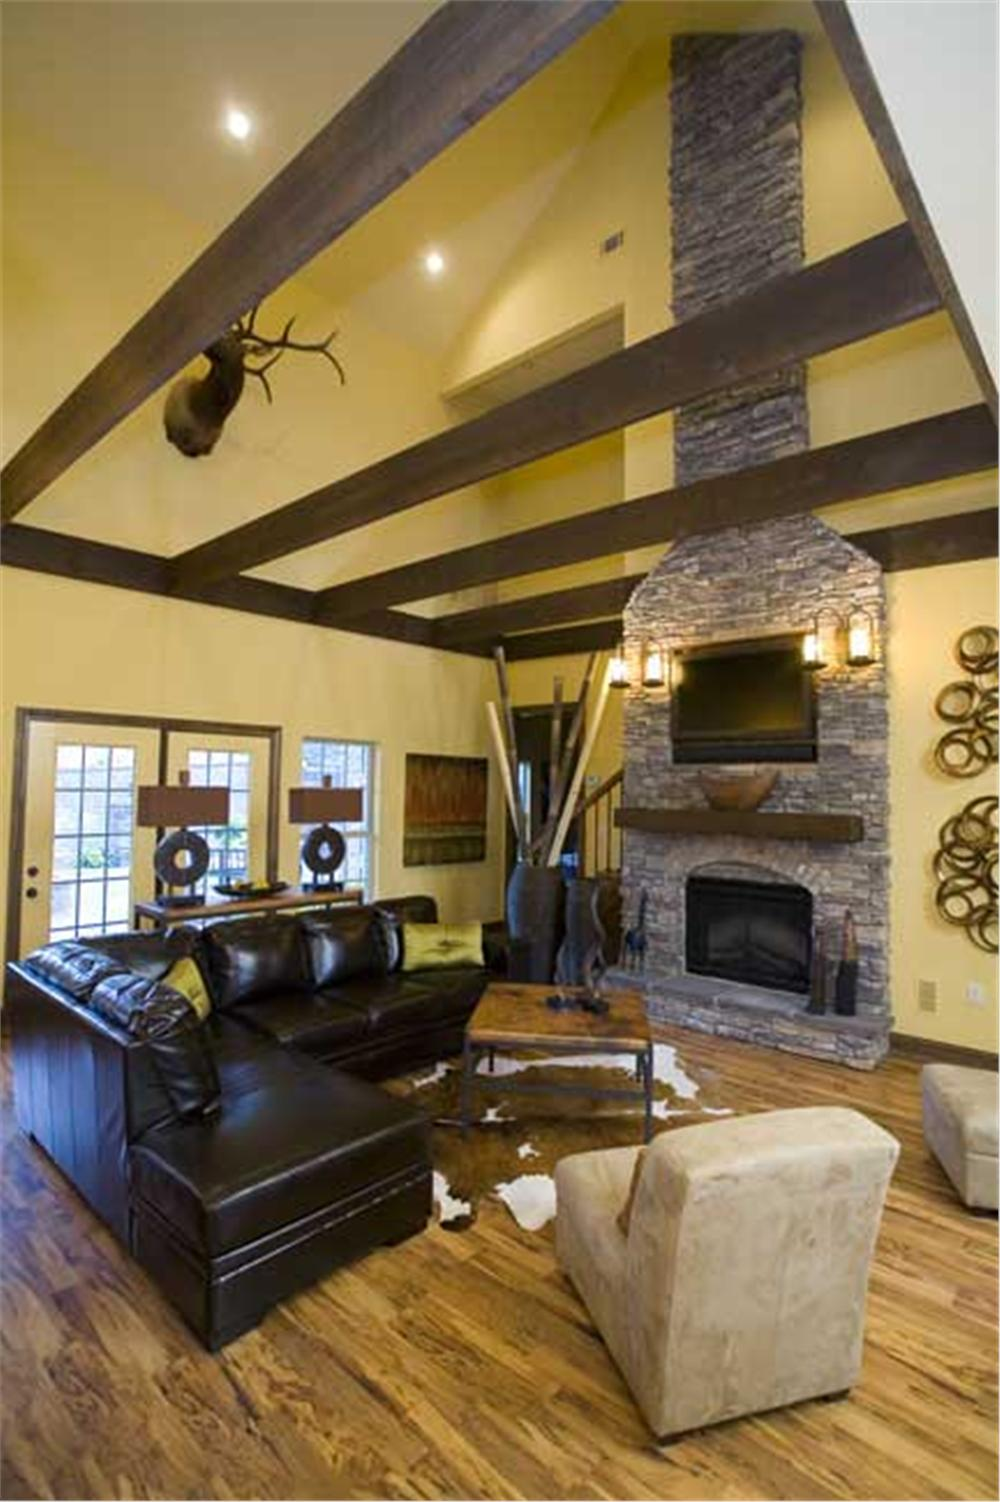 Large stone fireplace as focal point in rustic Country style decor